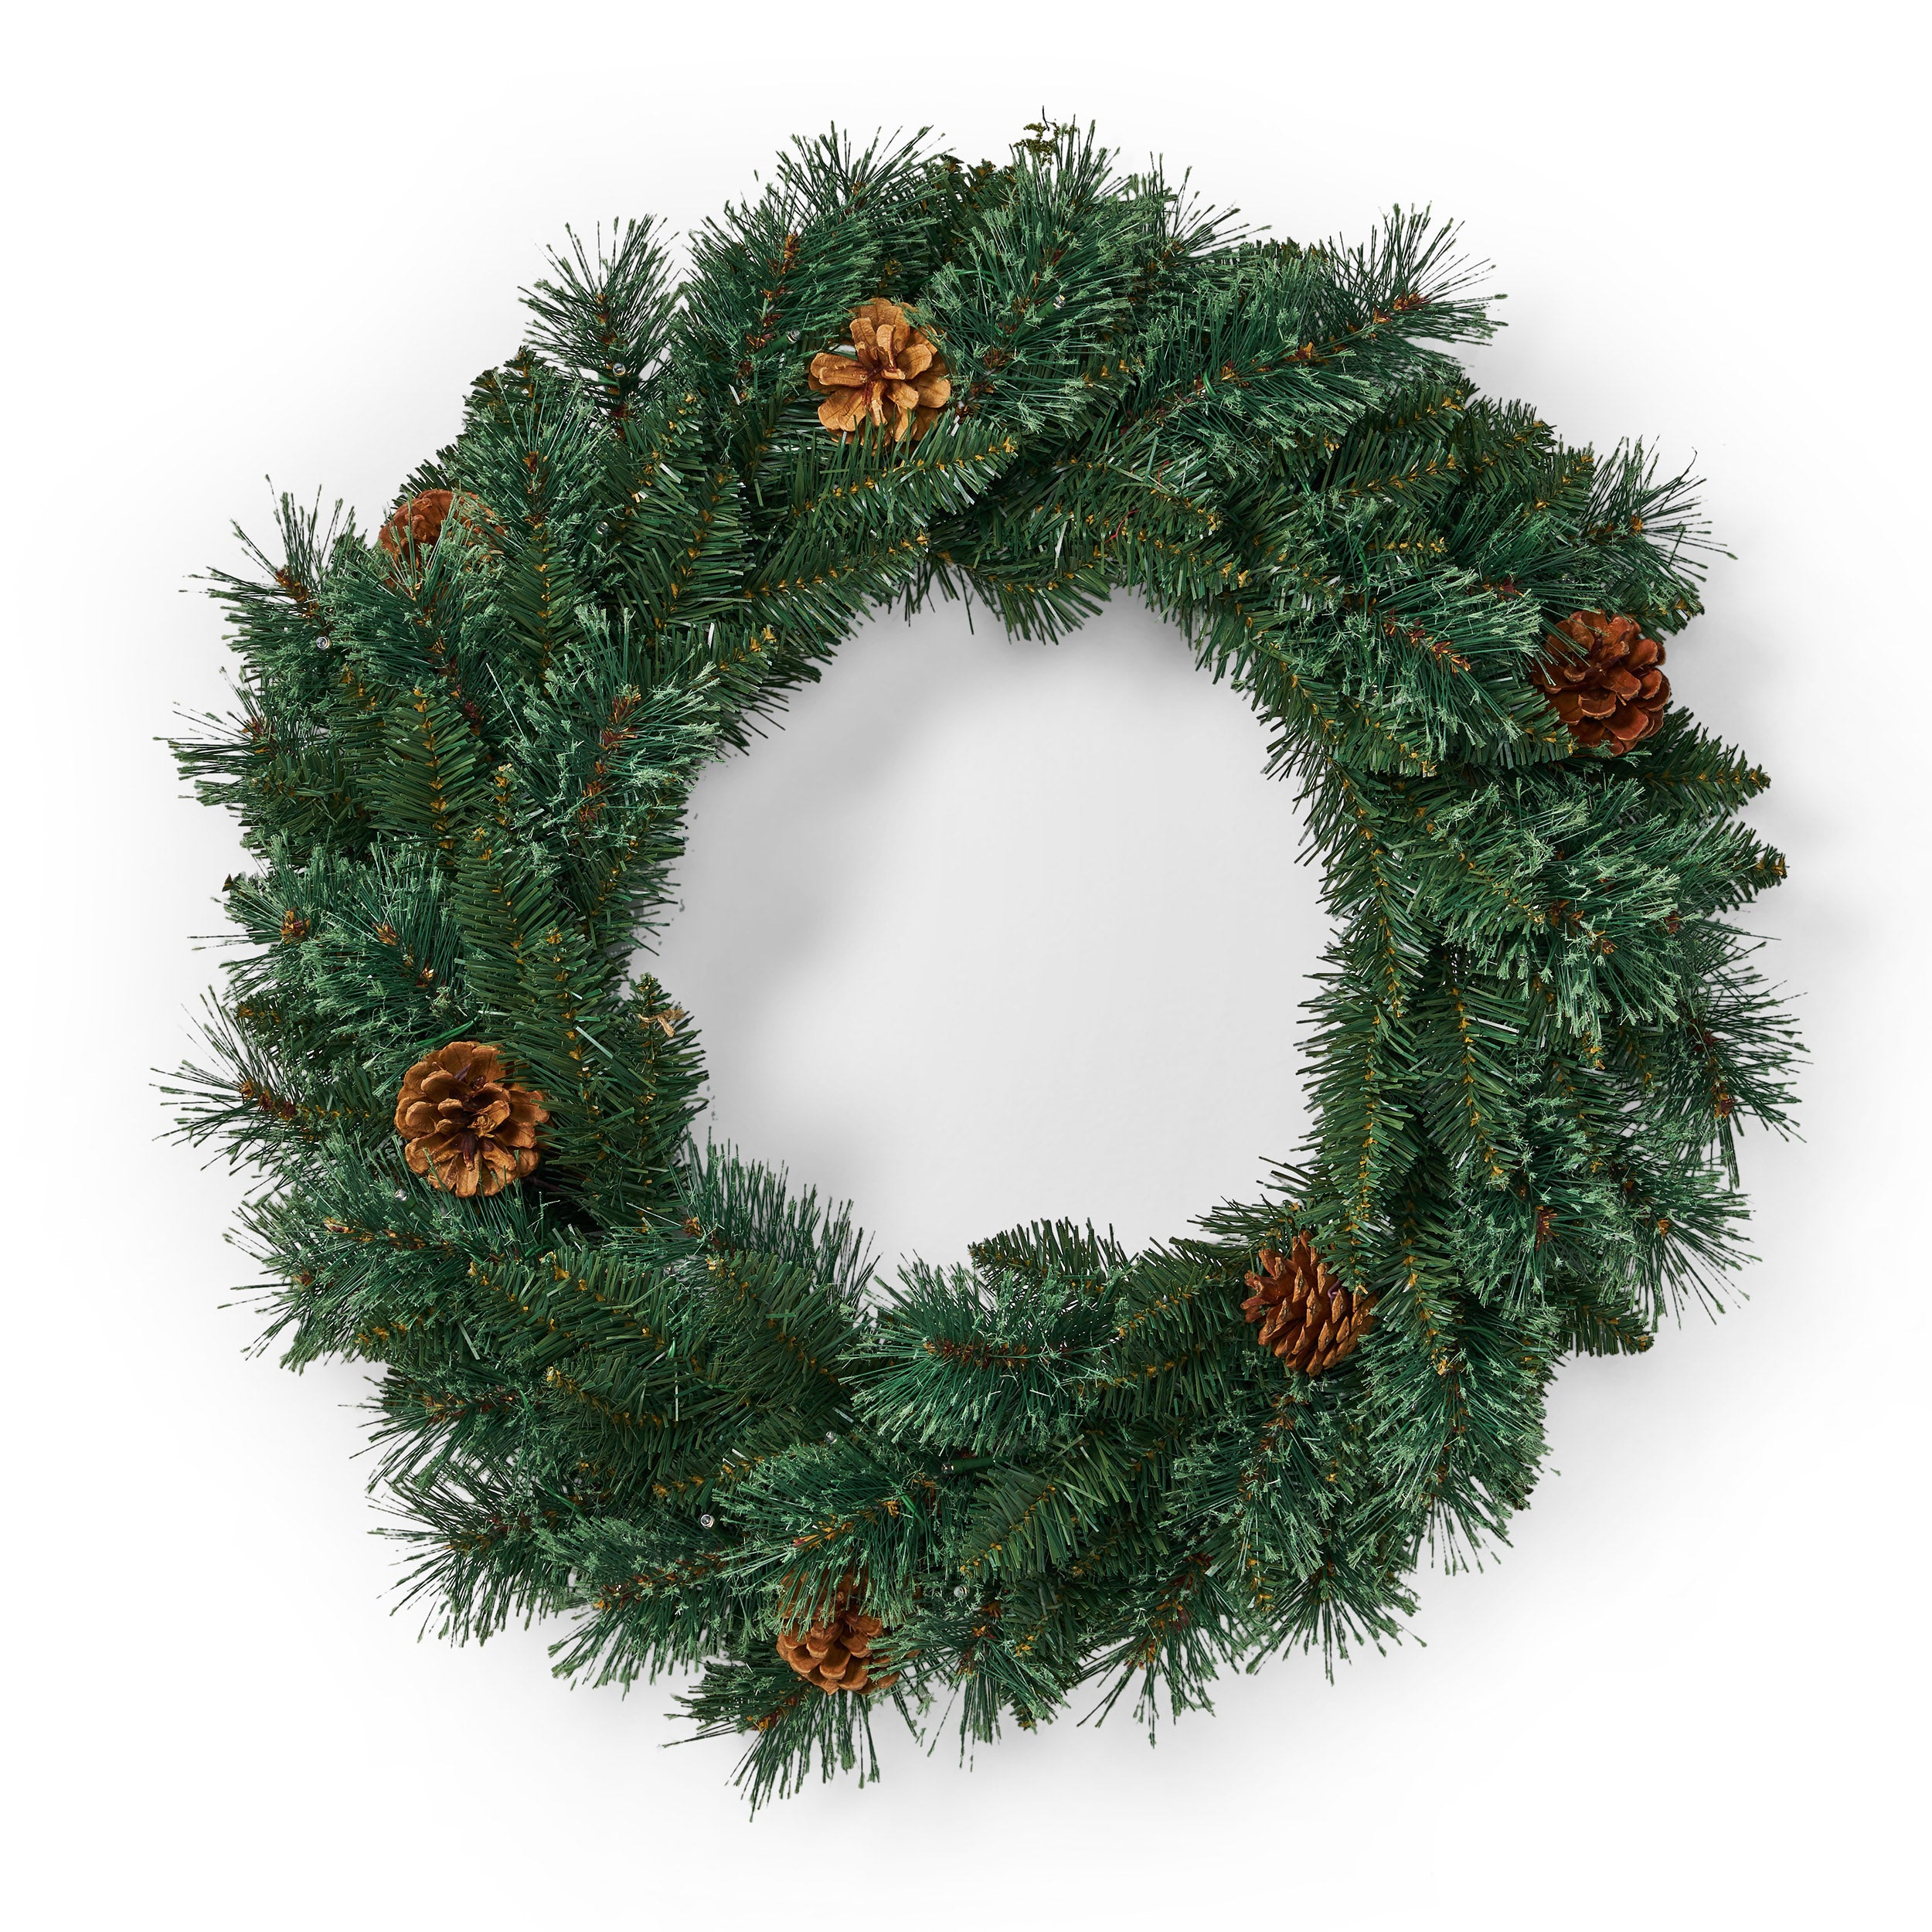 24 Mixed Pine Pre Lit Warm White LED Artificial Christmas Wreath with Pine Cones Green